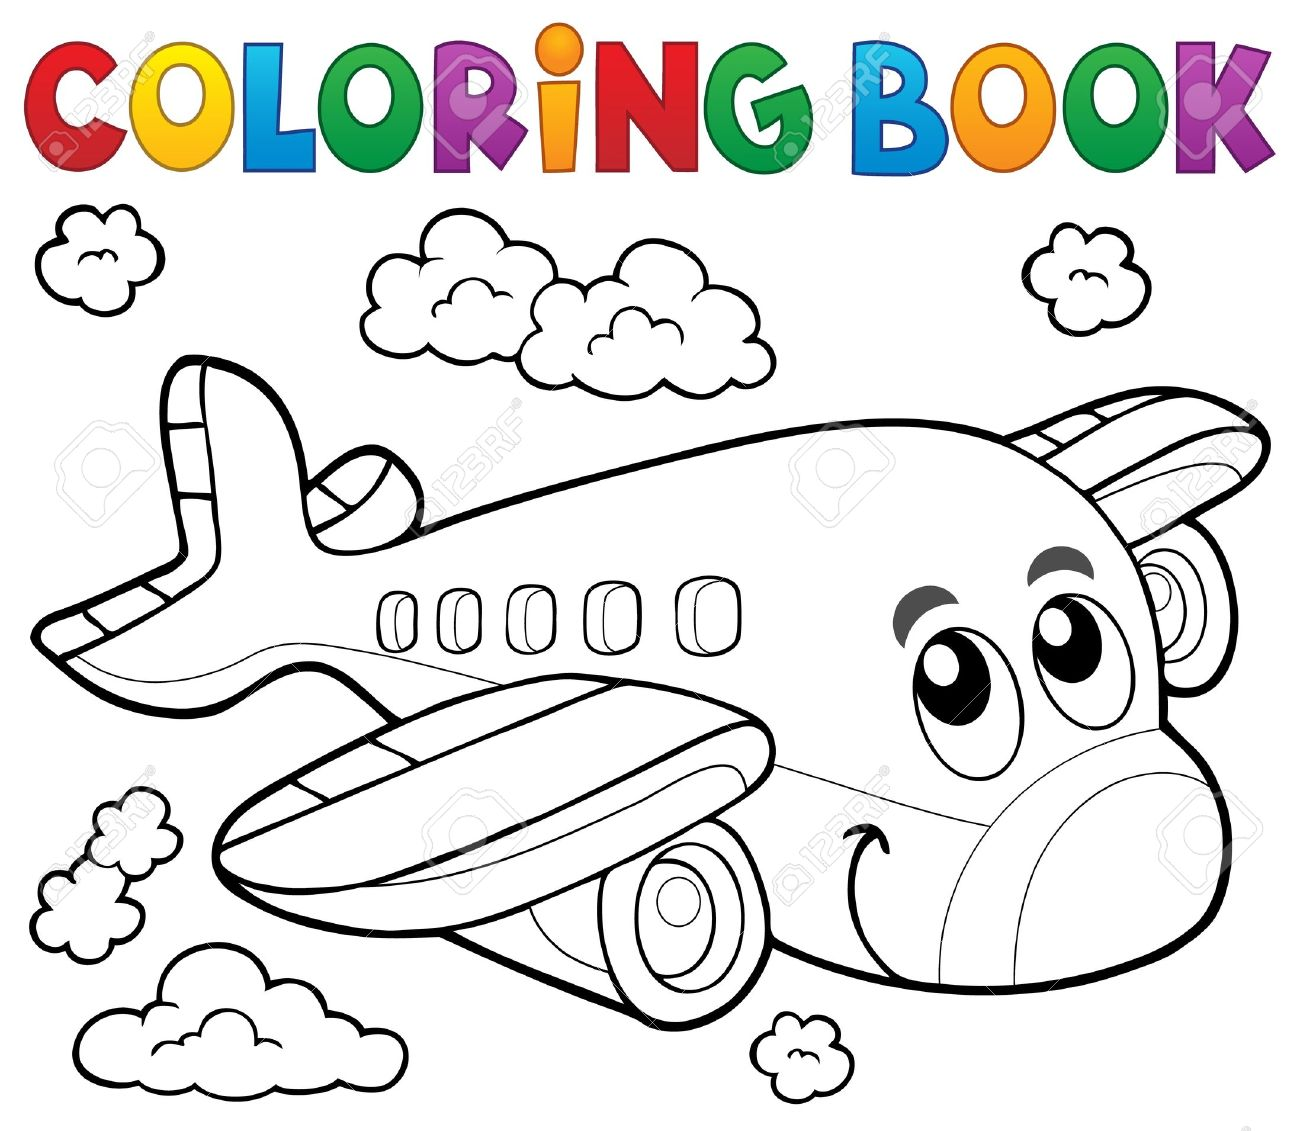 Coloring Book Airplane Theme Royalty Free Cliparts, Vectors, And ...